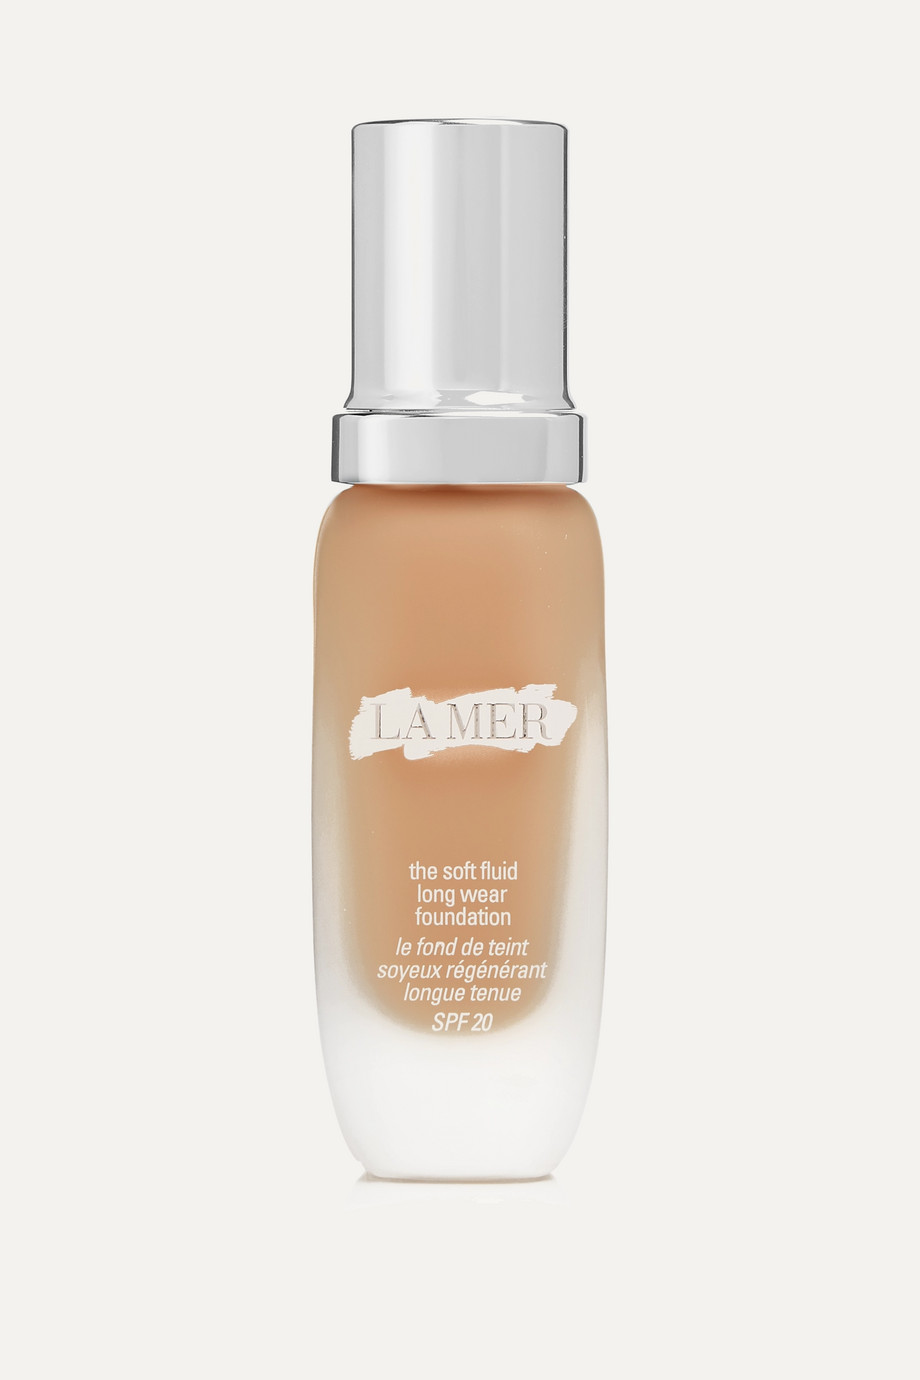 La Mer The Soft Fluid Long Wear Foundation SPF20 - 240 Buff, 30ml